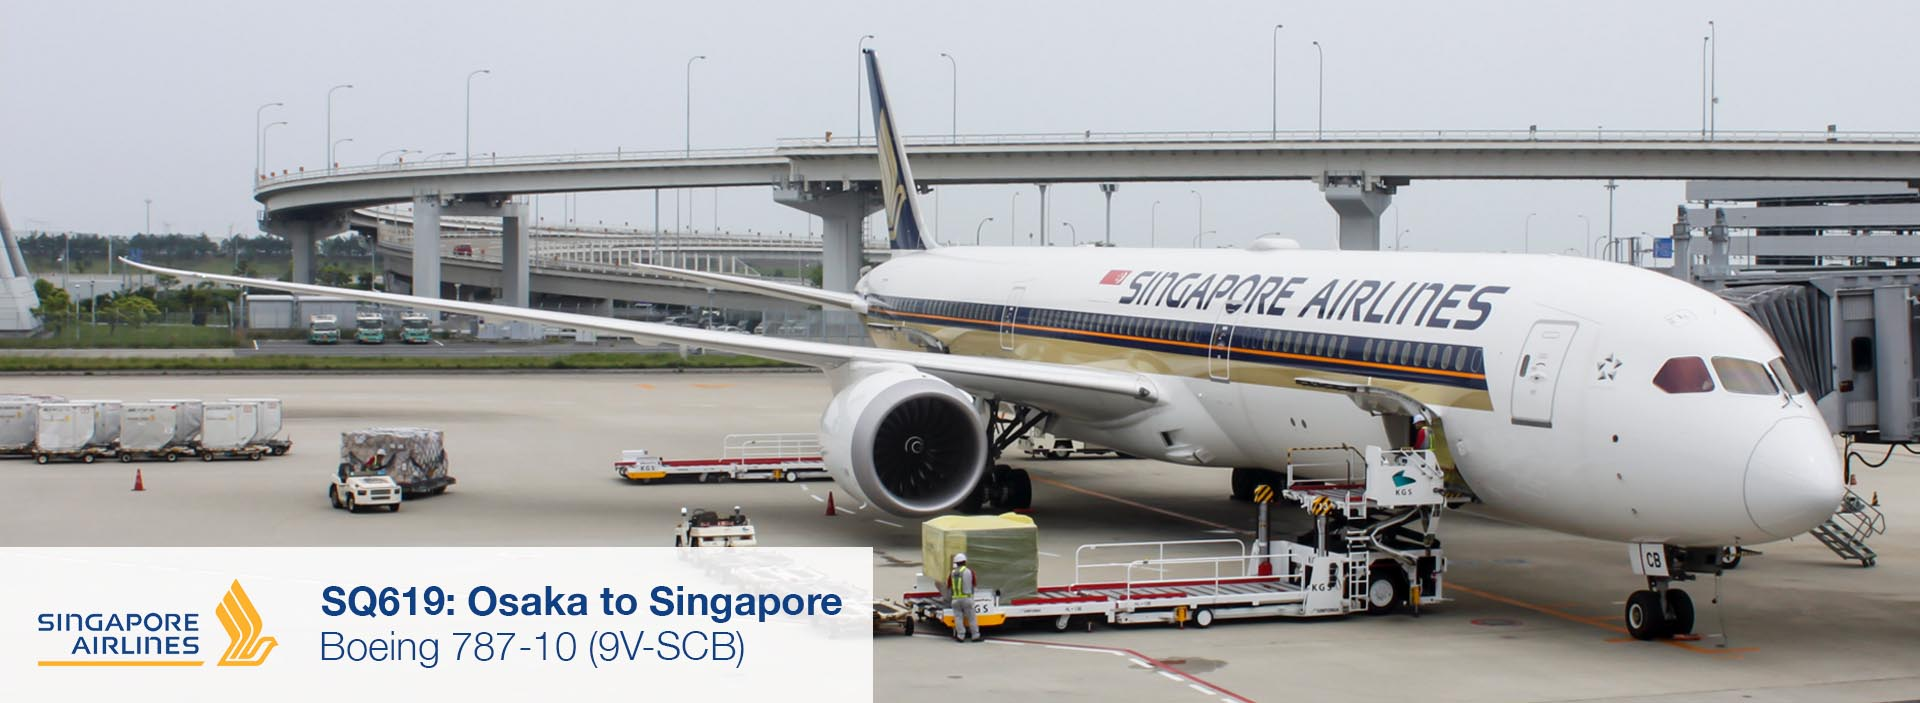 Review: Singapore Airlines 787-10 Business Class from Osaka Kansai to Singapore